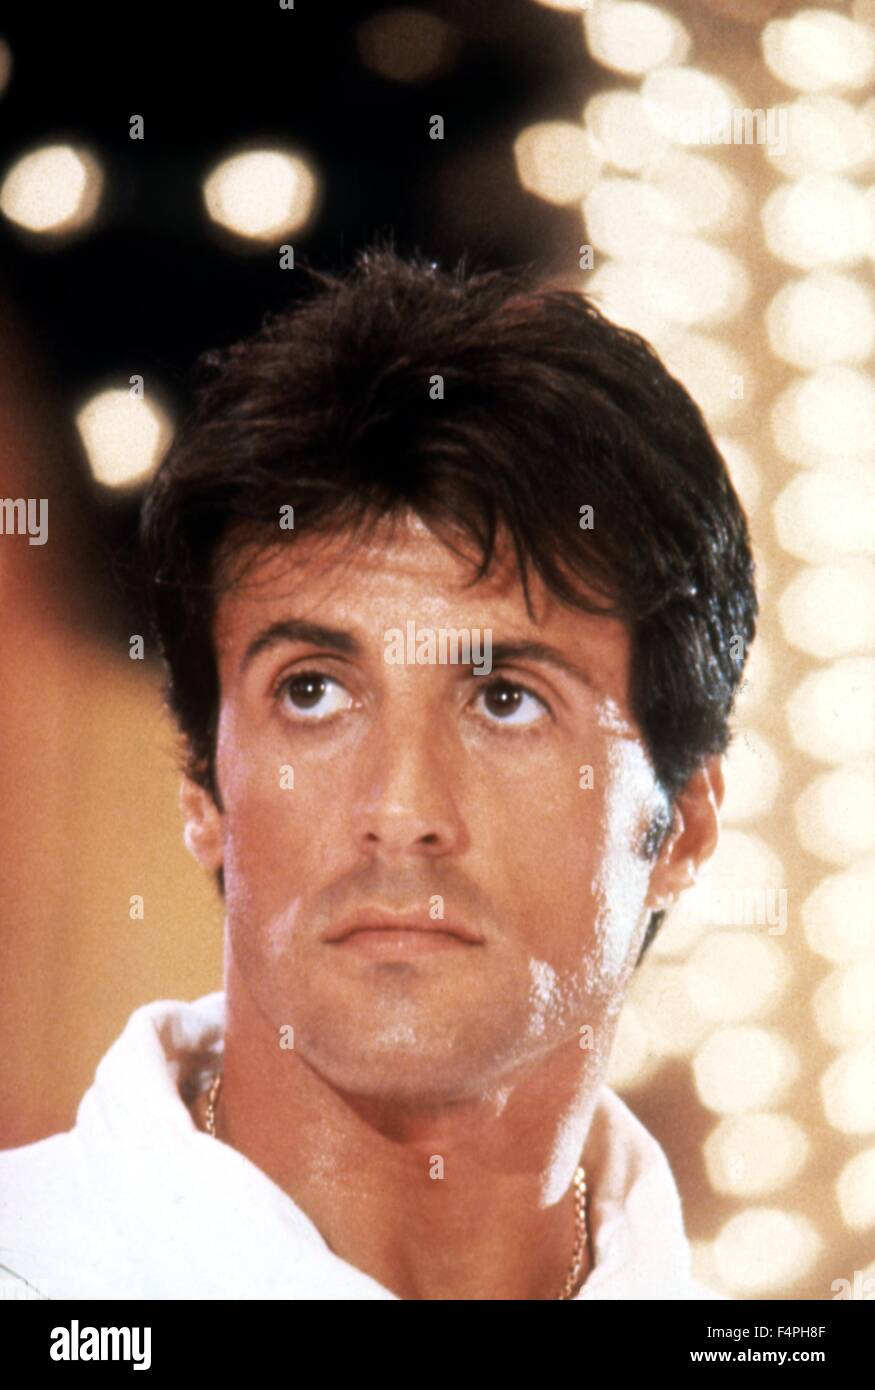 Sylvester Stallone / Rocky IV / 1985 directed by Sylvester Stallone - Stock Image